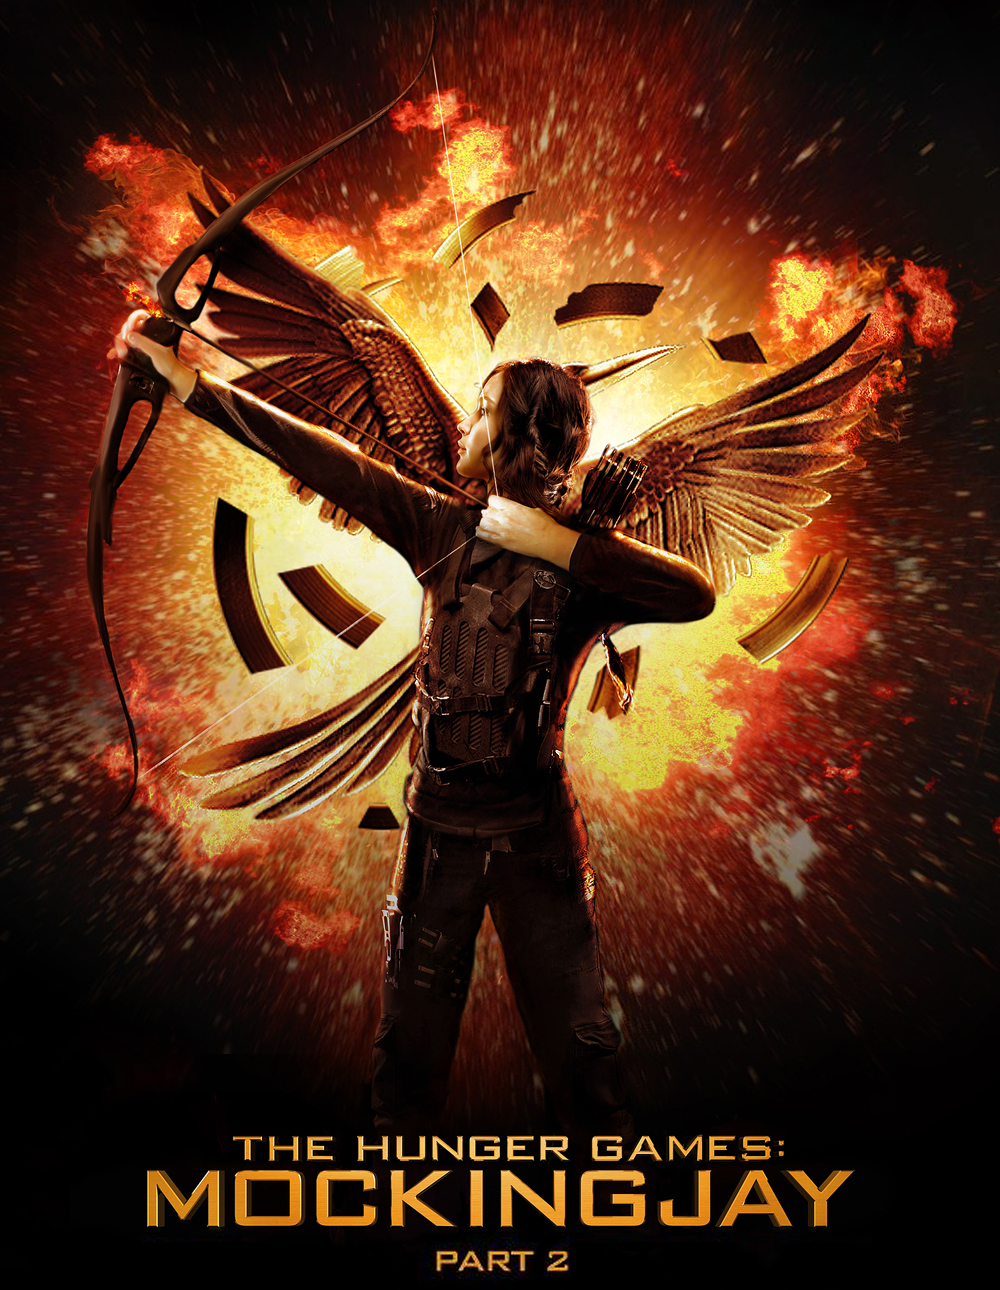 Hunger Games: Mockingjay Part 2